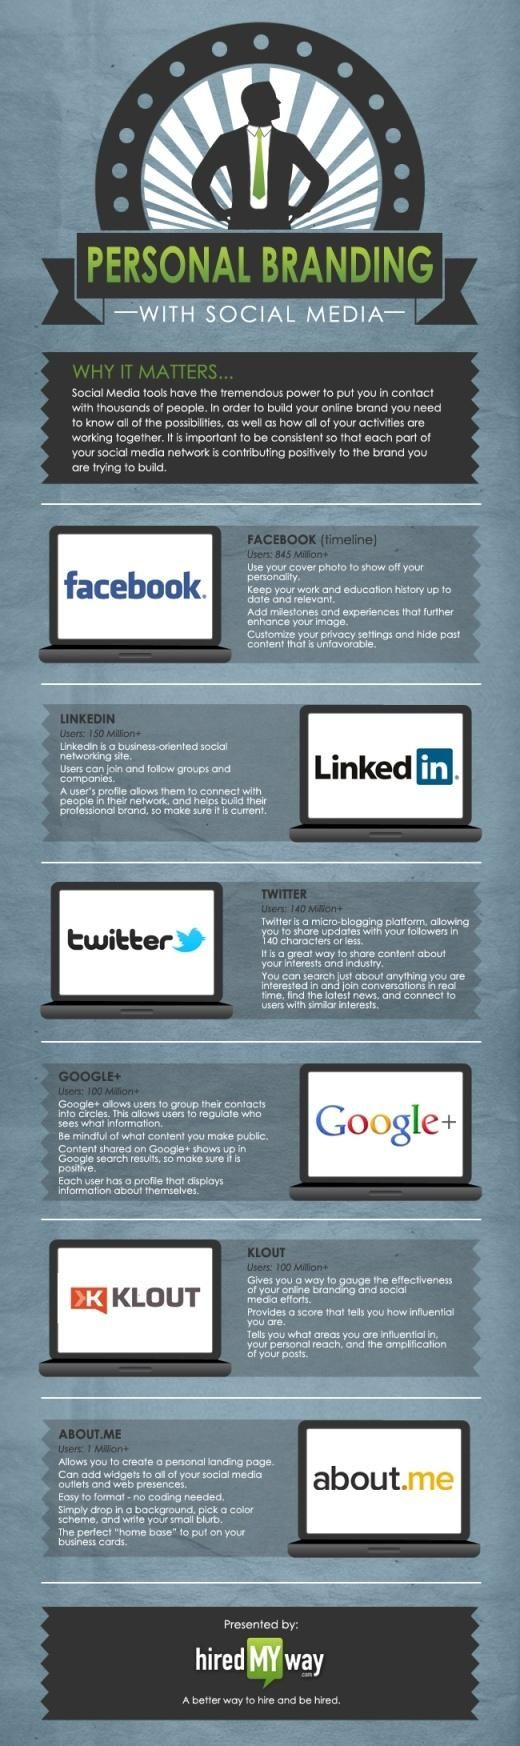 Marketing yourself through social media is becoming increasingly important in the job search. Keep these tips in mind.